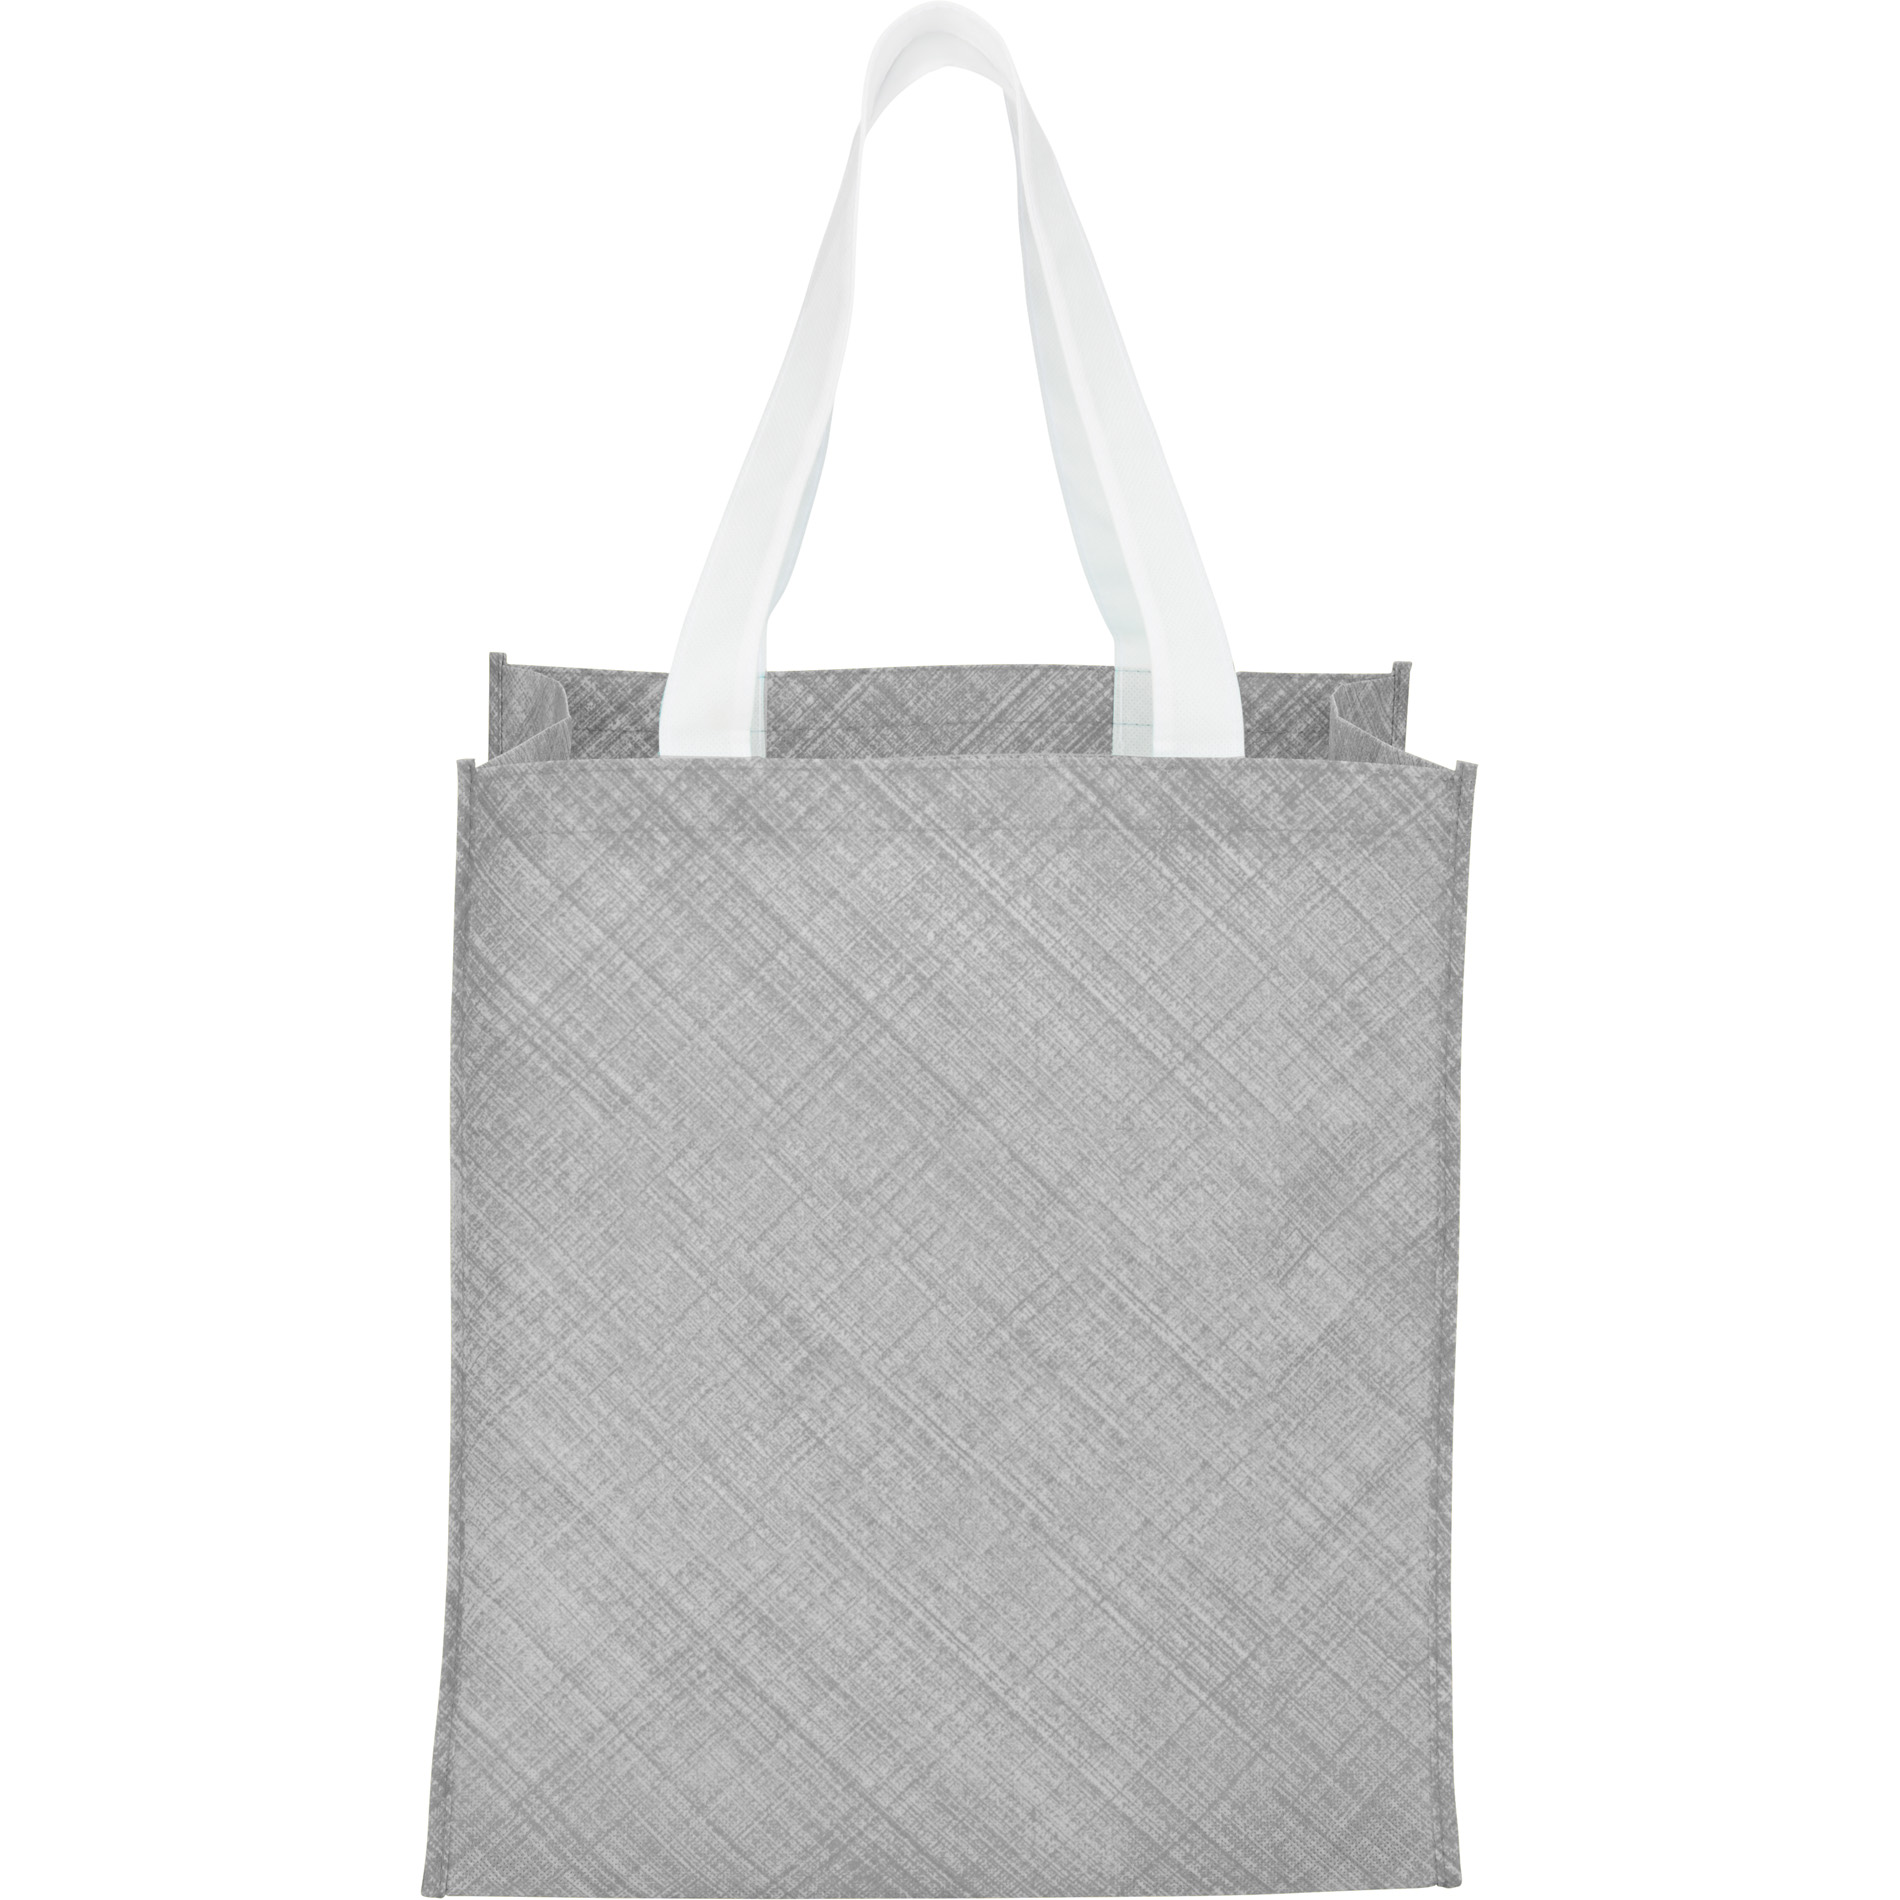 LEEDS 2150-41 - Pastel Non-Woven Big Grocery Tote